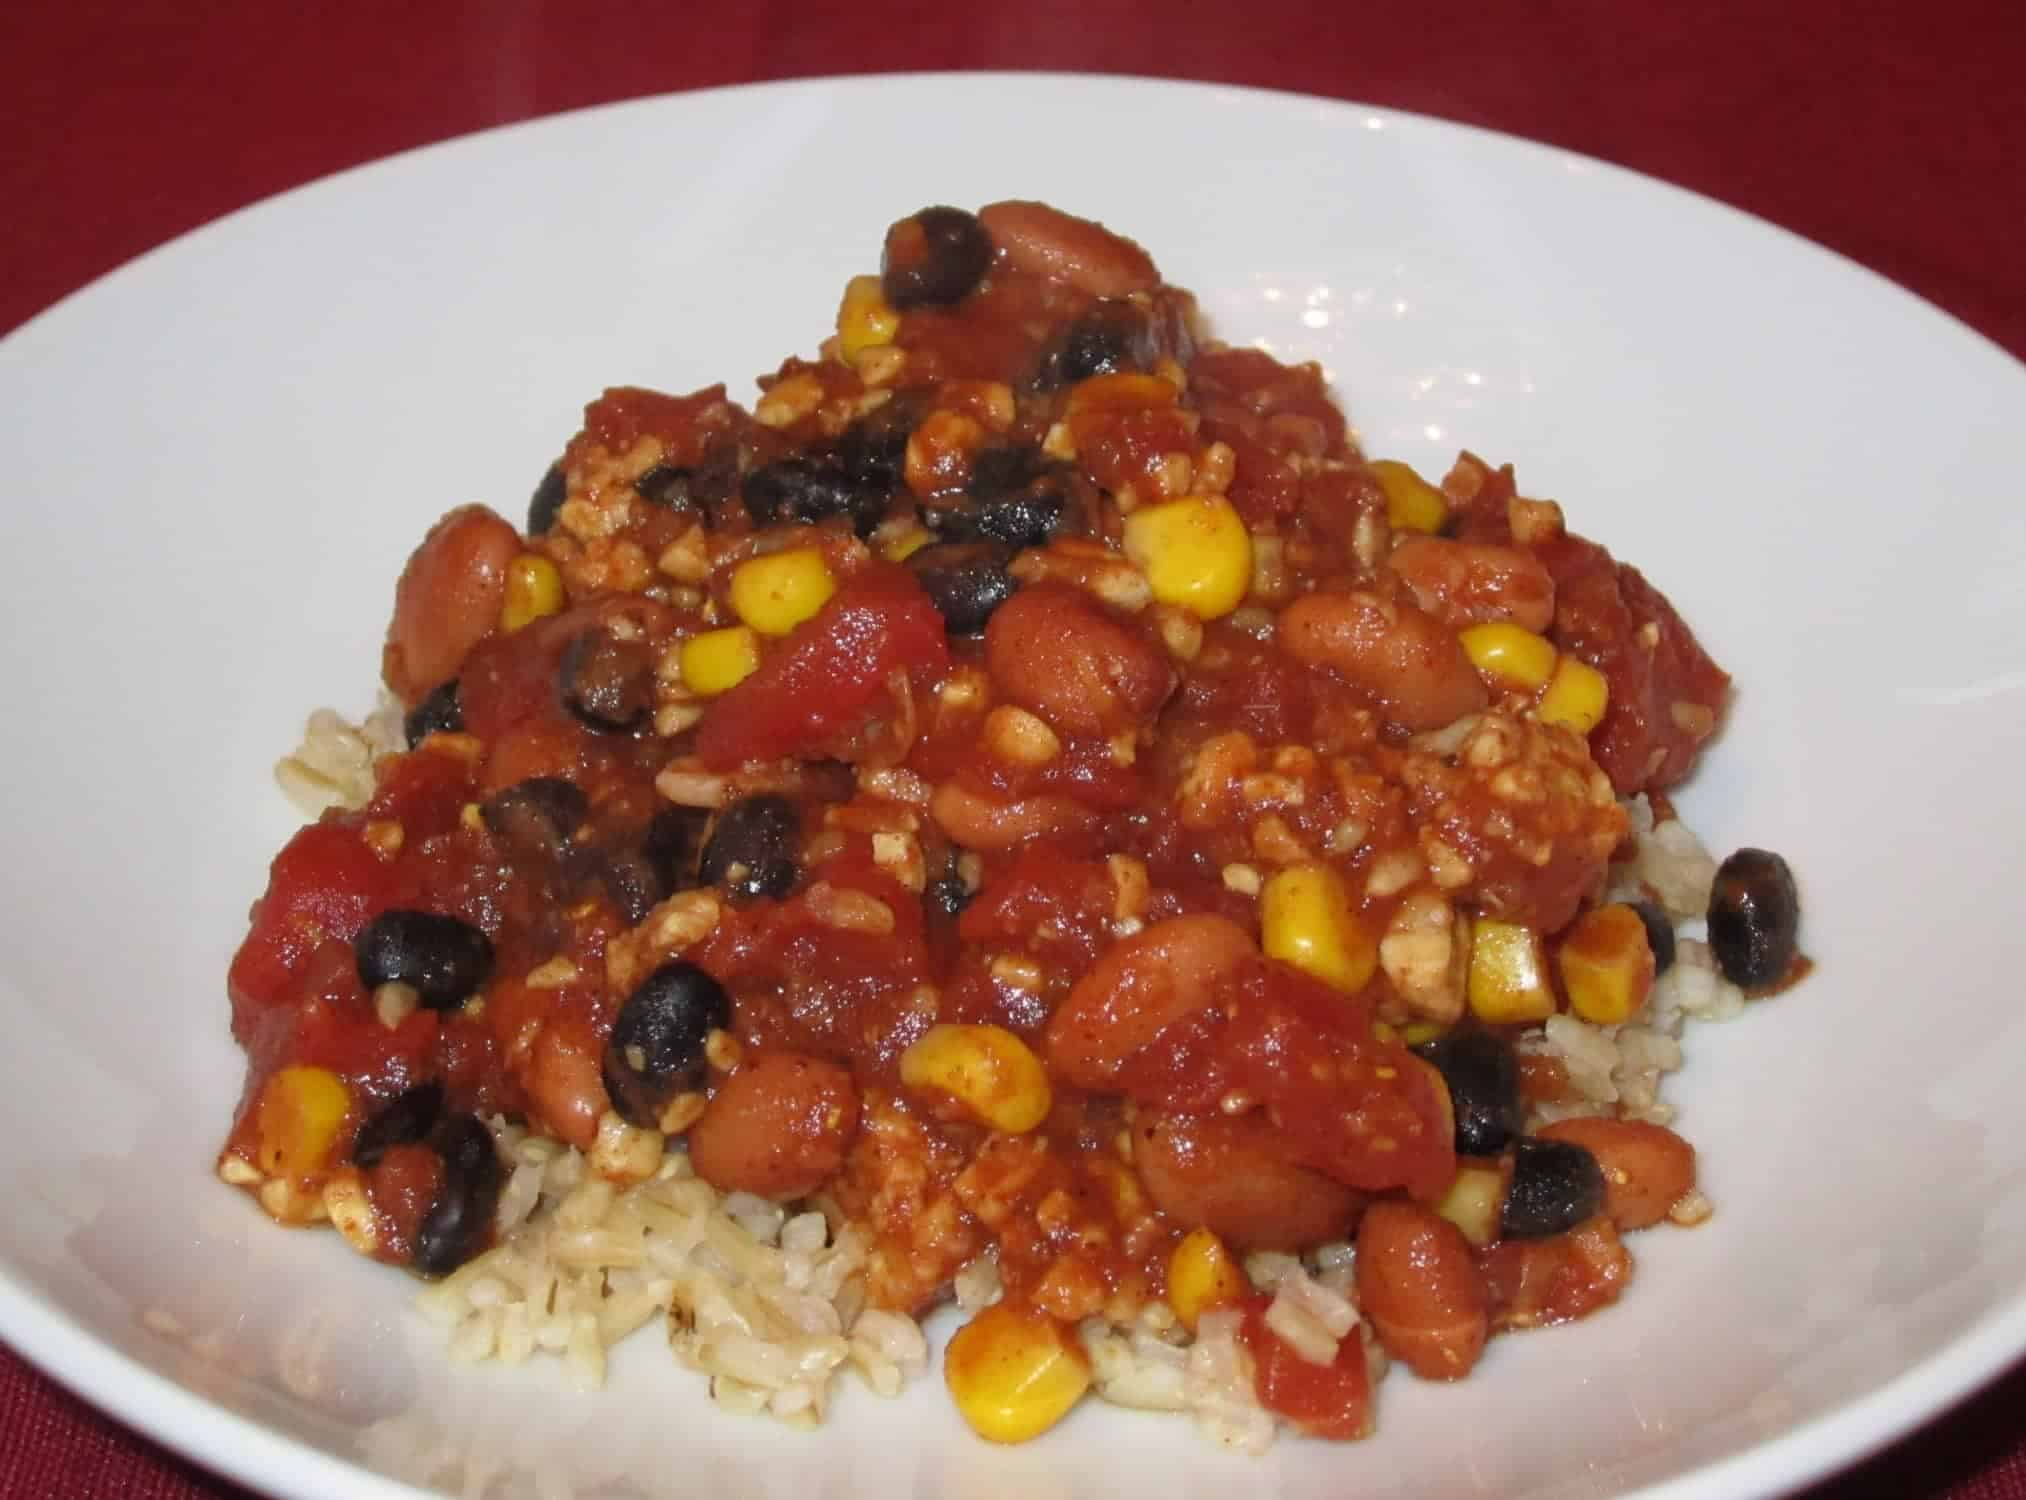 Tempeh Chili: My favorite weeknight meal